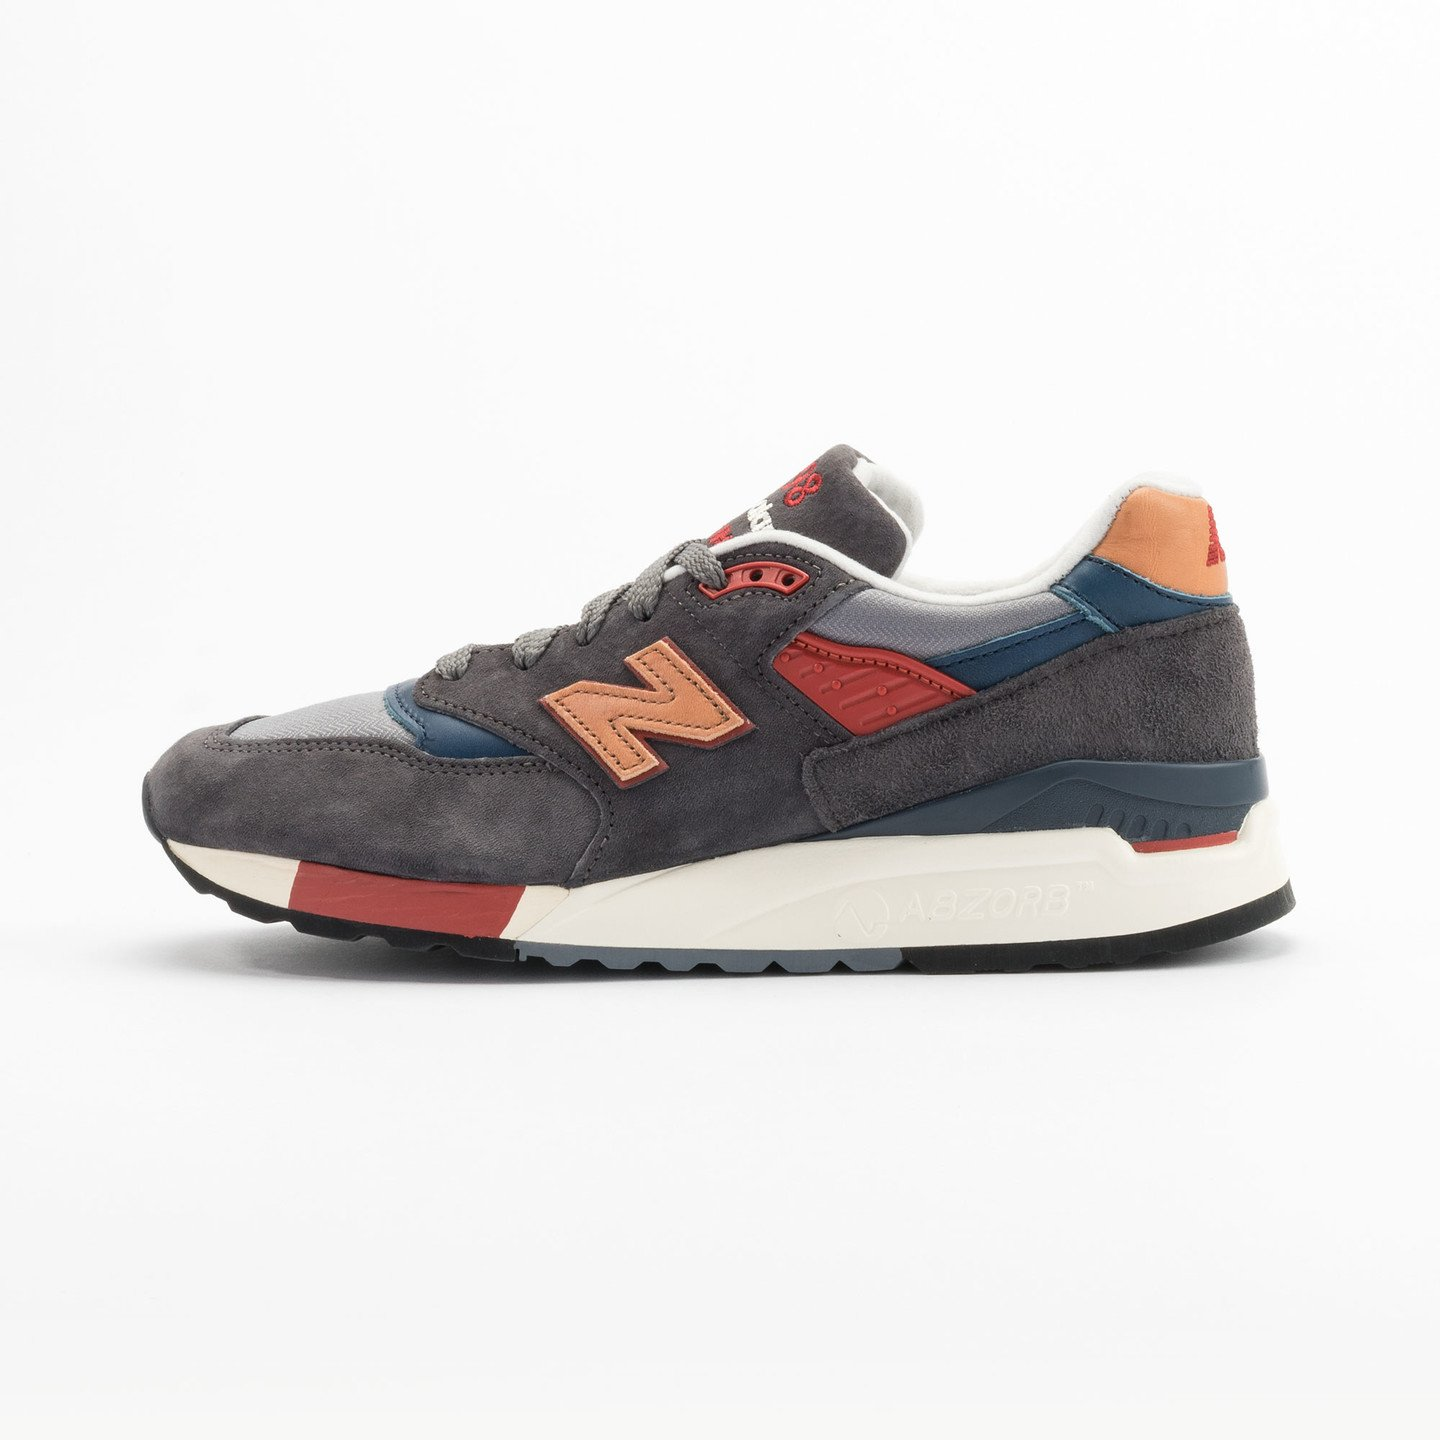 New Balance M998 Made in USA Dark Grey / Beige / Red / Navy M998DBR-46.5